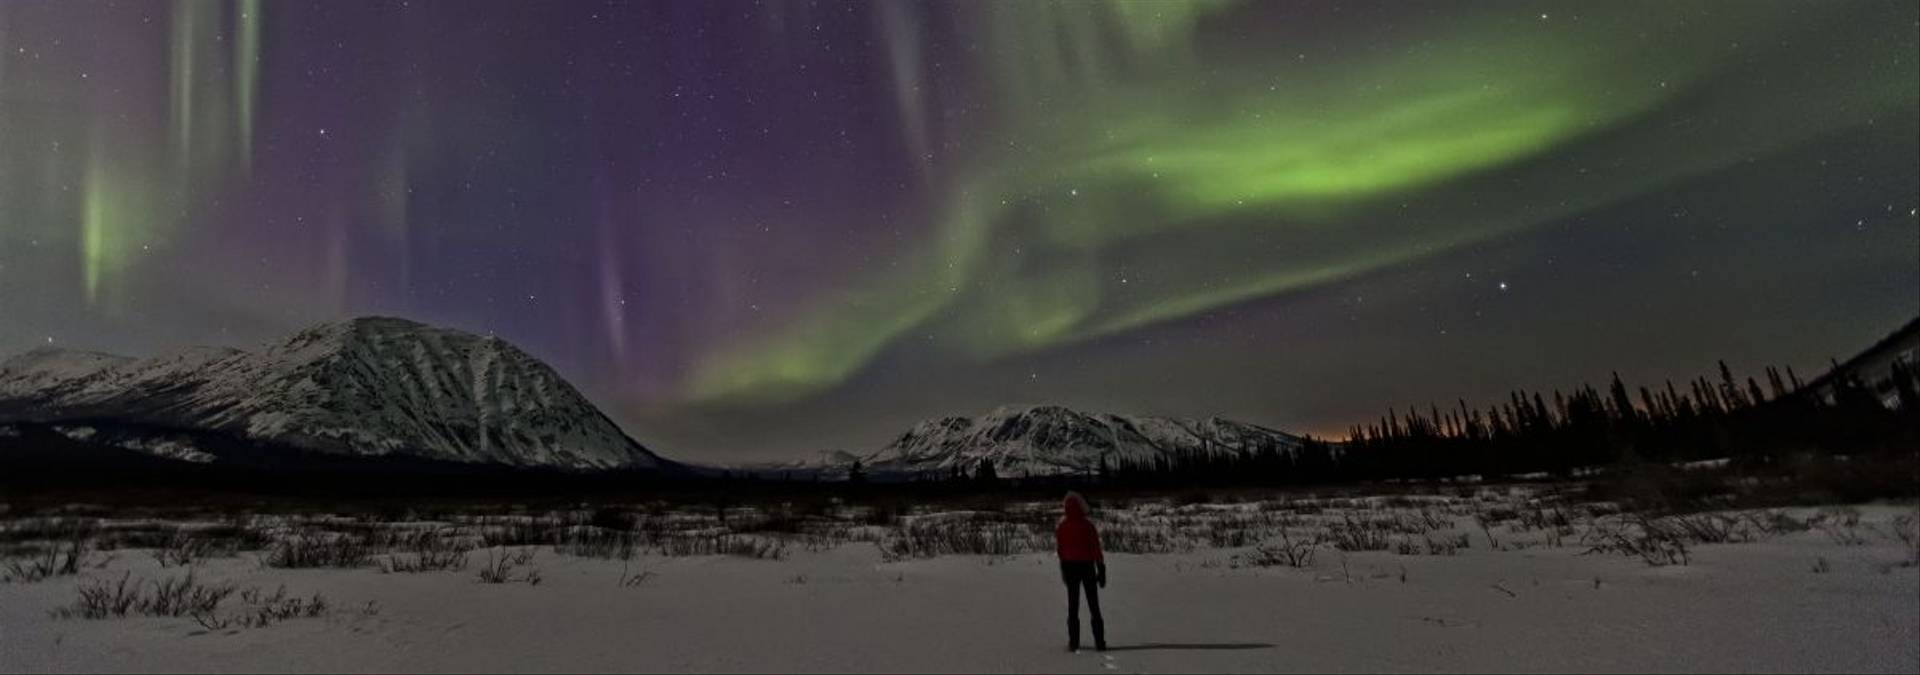 Northern Lights Yukon Credit  Robert Postma & Yukon Government 2.jpg